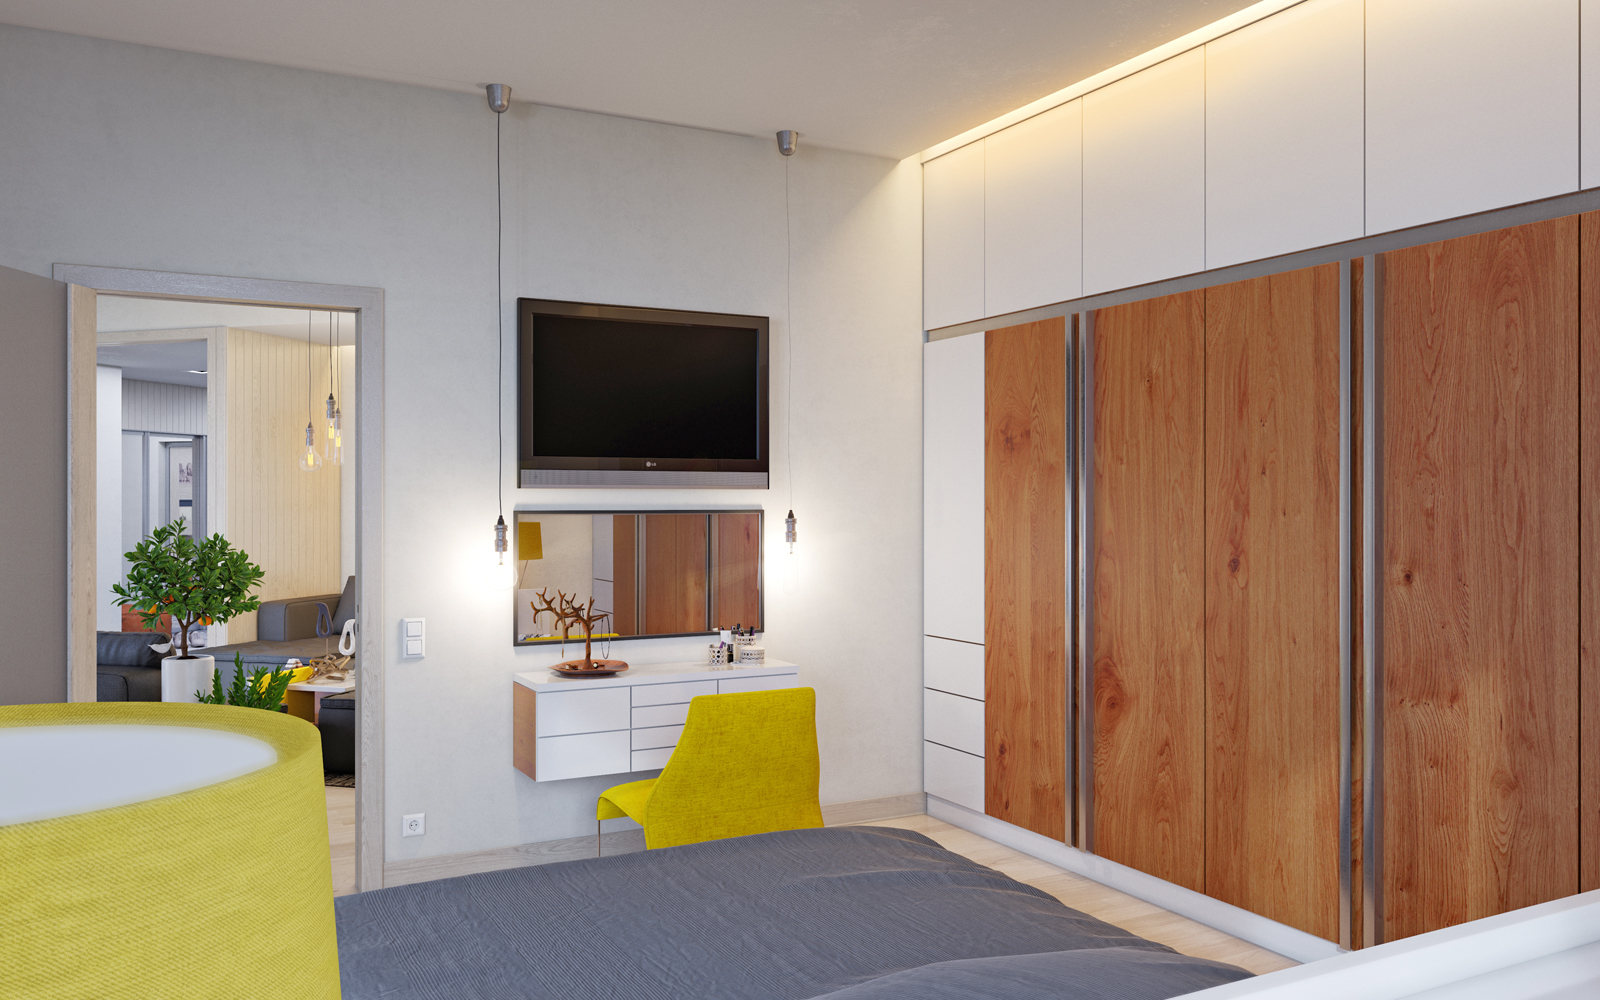 "Residential complex ""Nobel"". 2-room apartment. in 3d max corona render image"